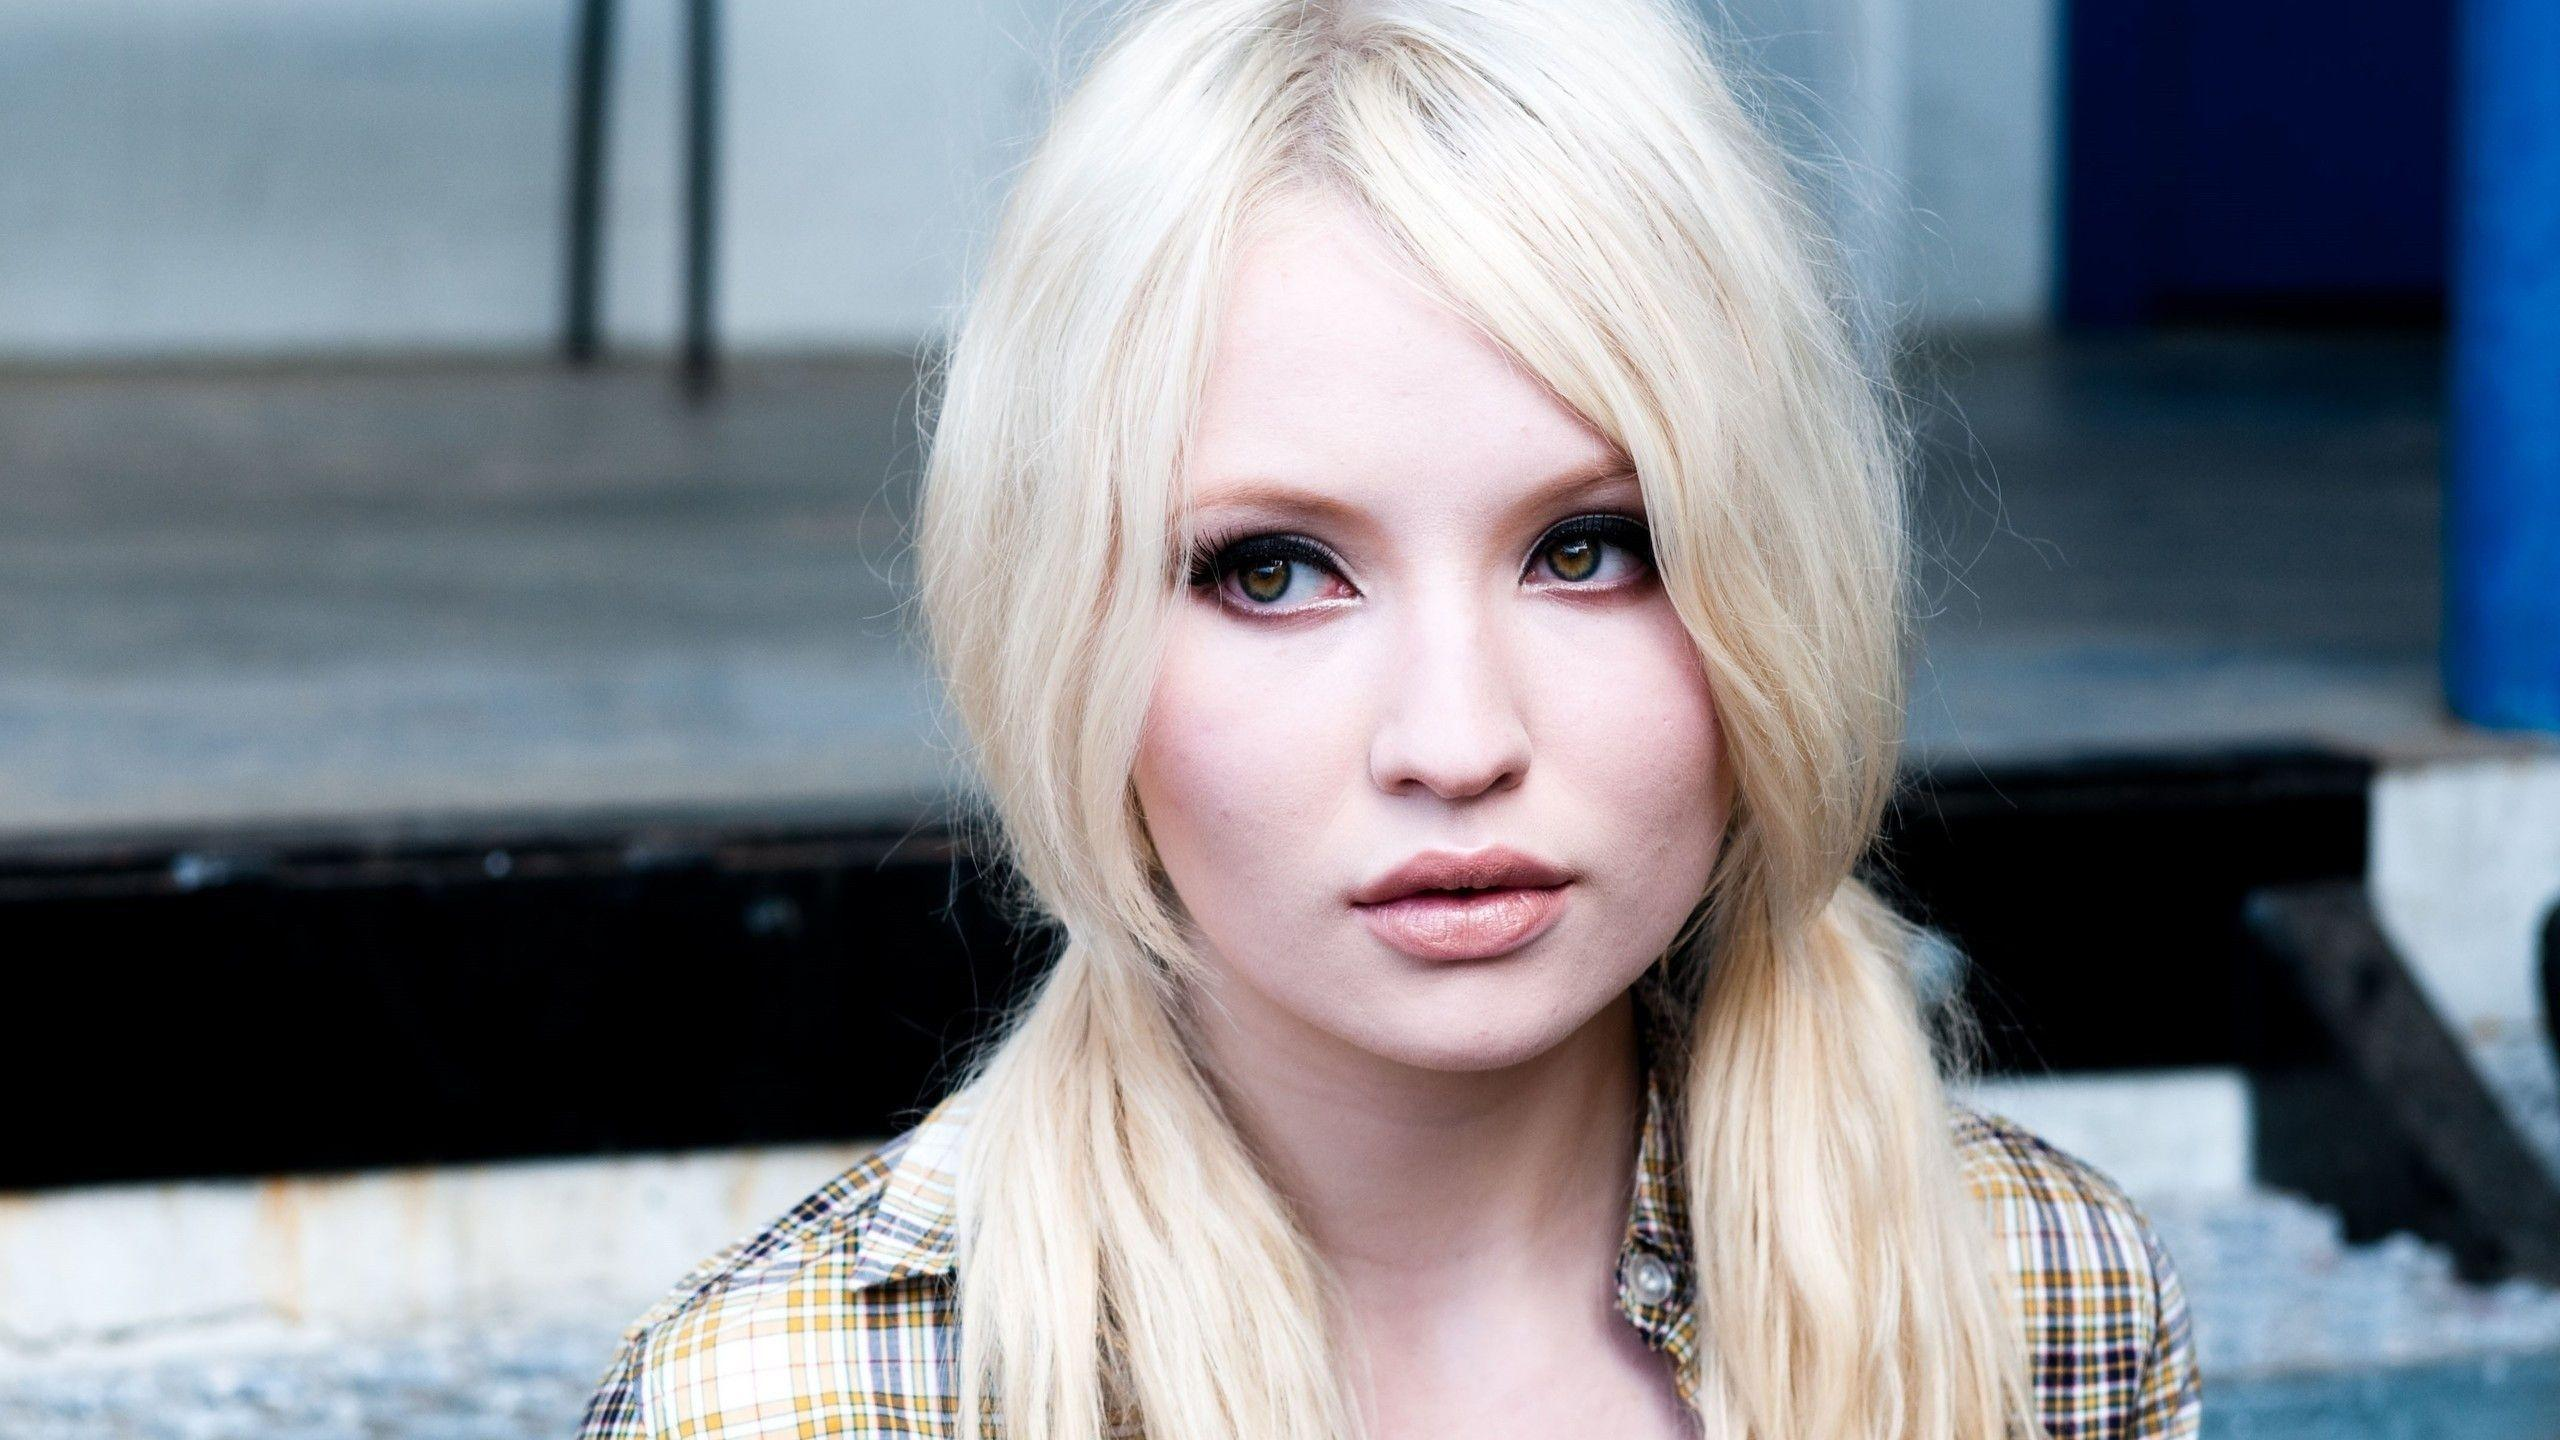 Emily browning wallpapers wallpaper cave - Browning wallpaper ...